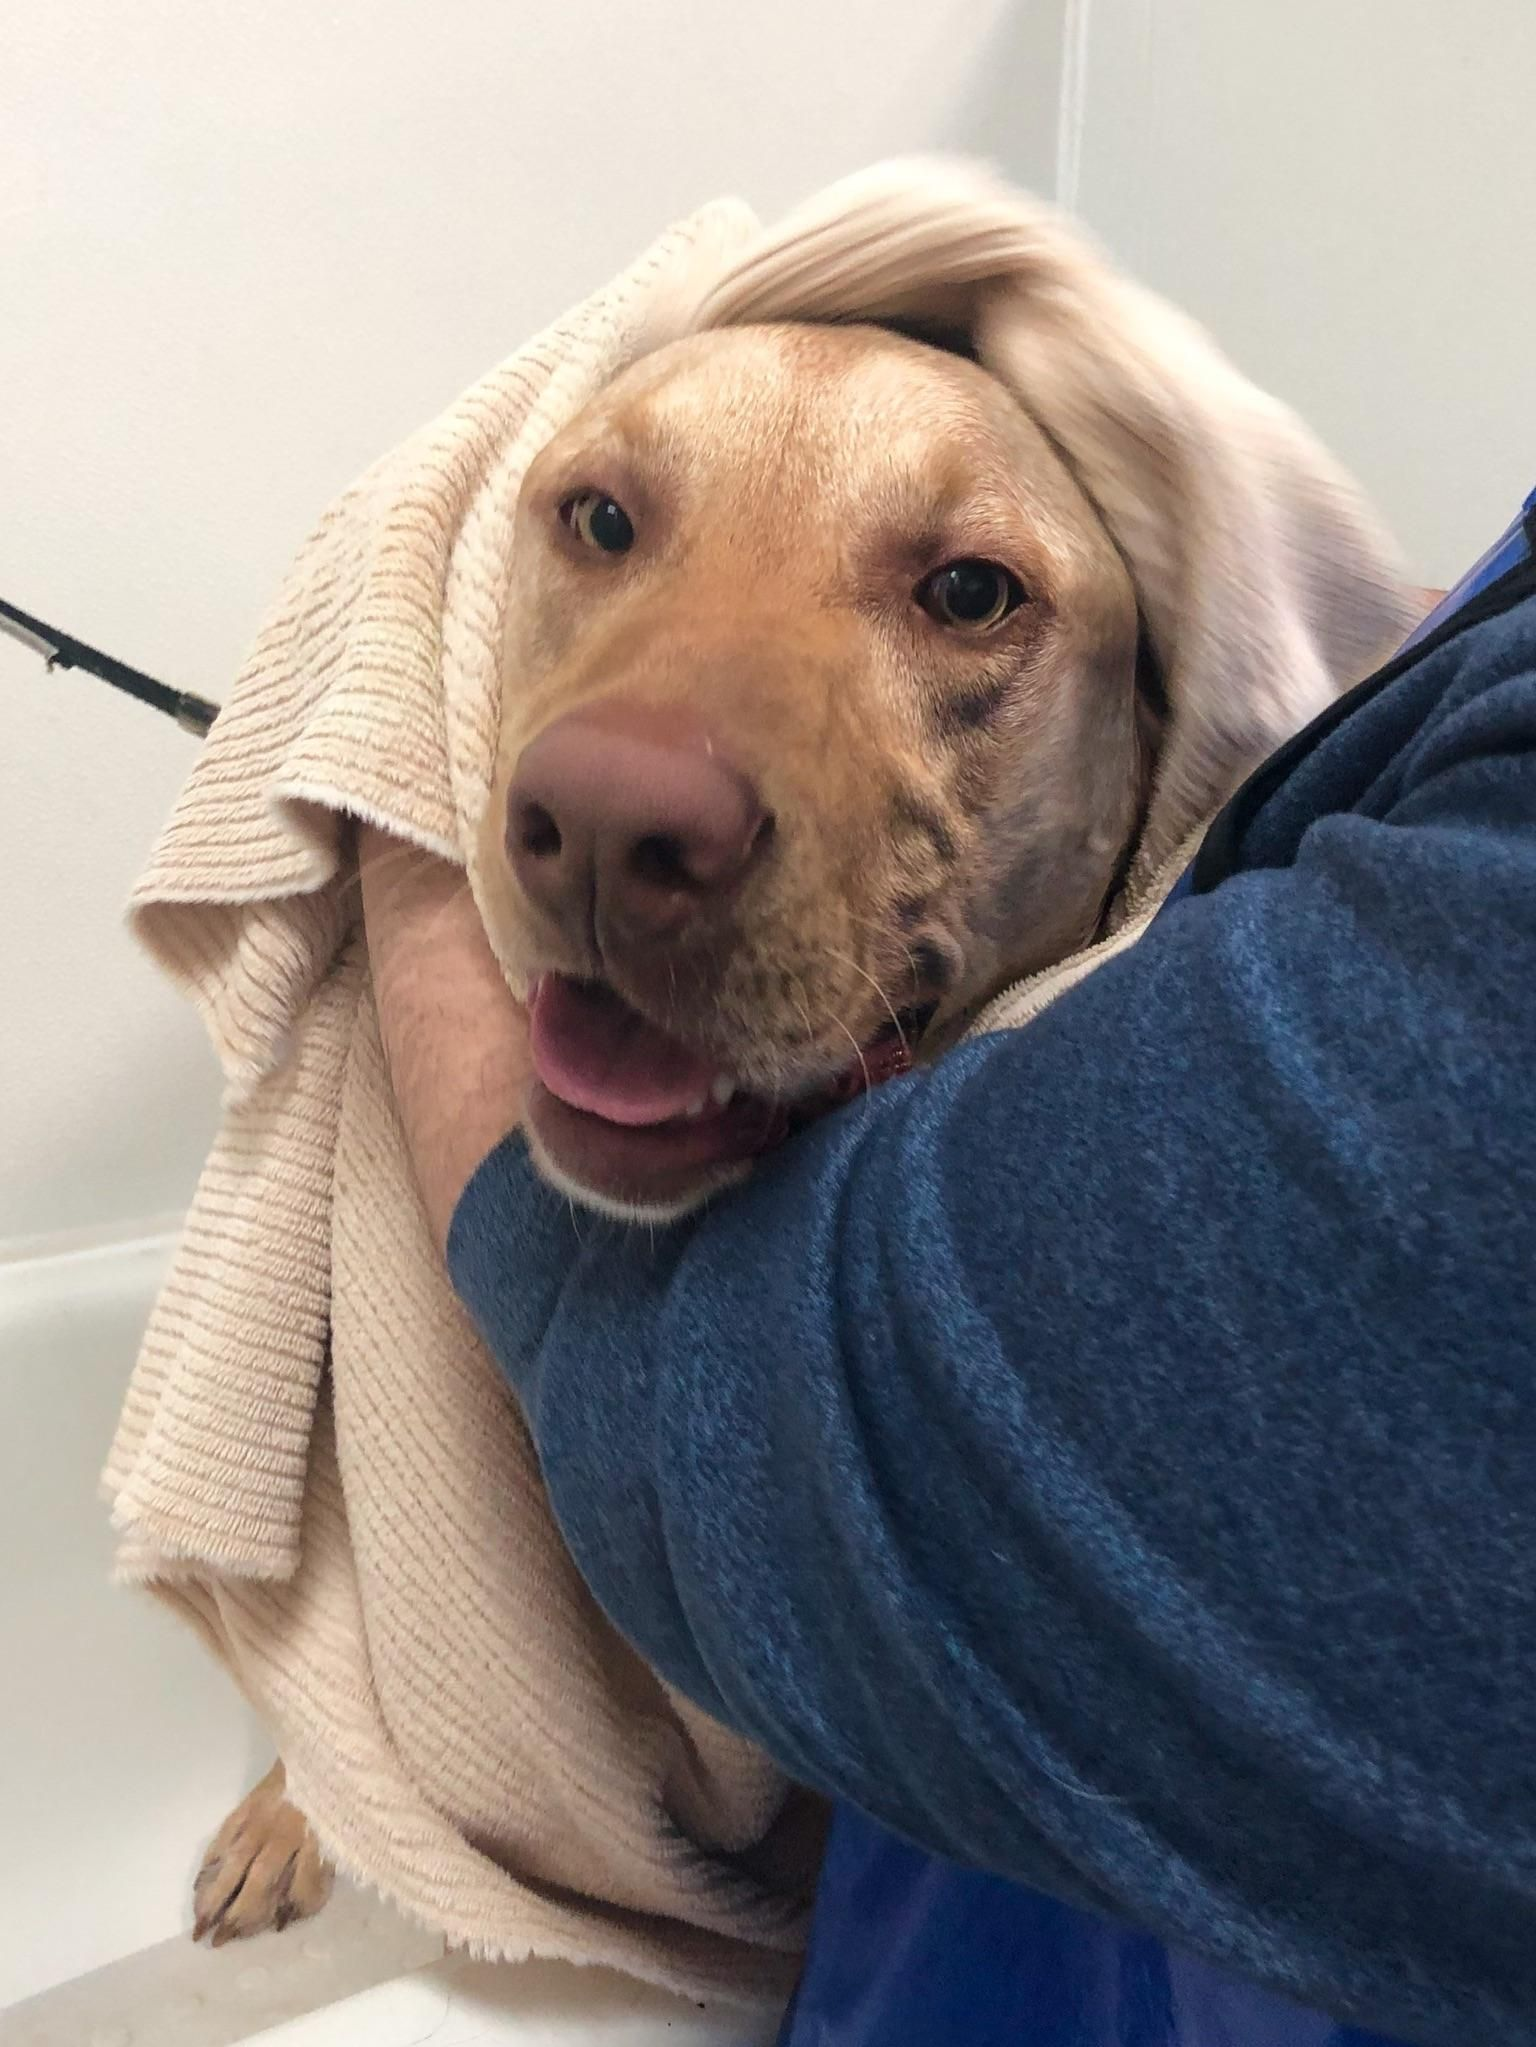 Gus Loves Bath Time Dogpictures Dogs Aww Cuteanimals